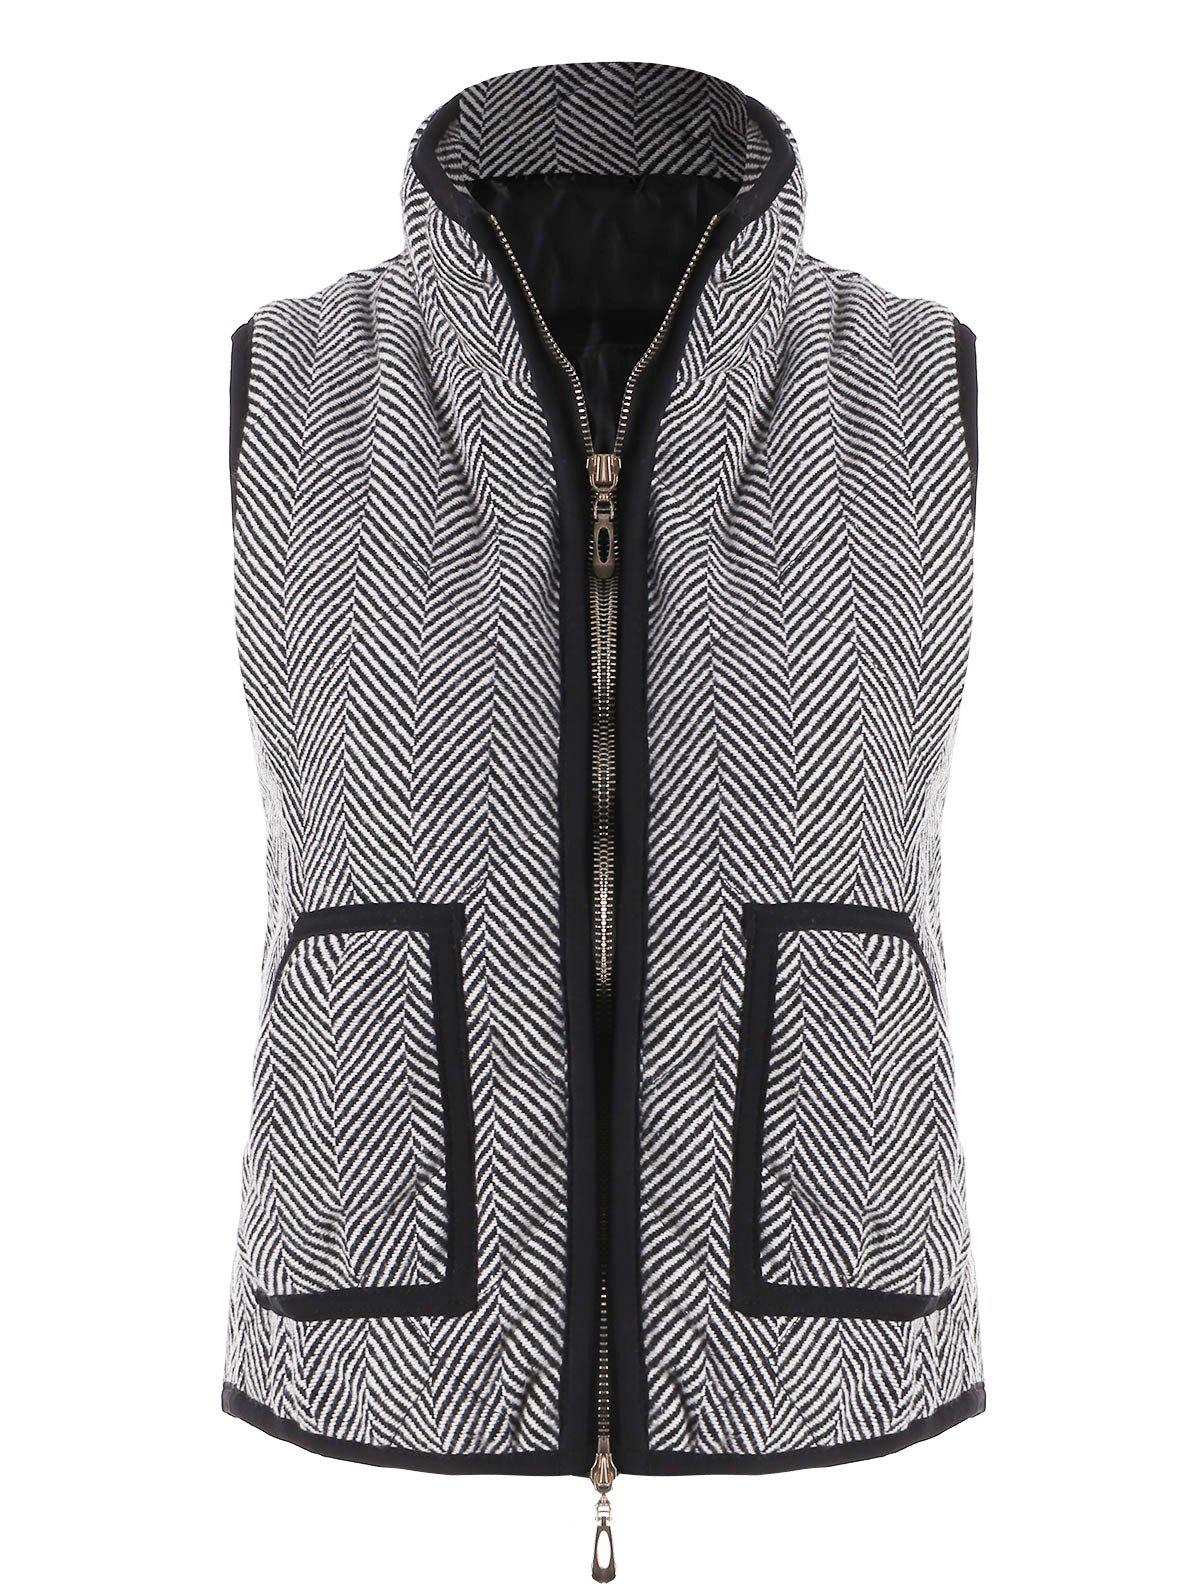 Store Zip Up Herringbone Vest with Pockets